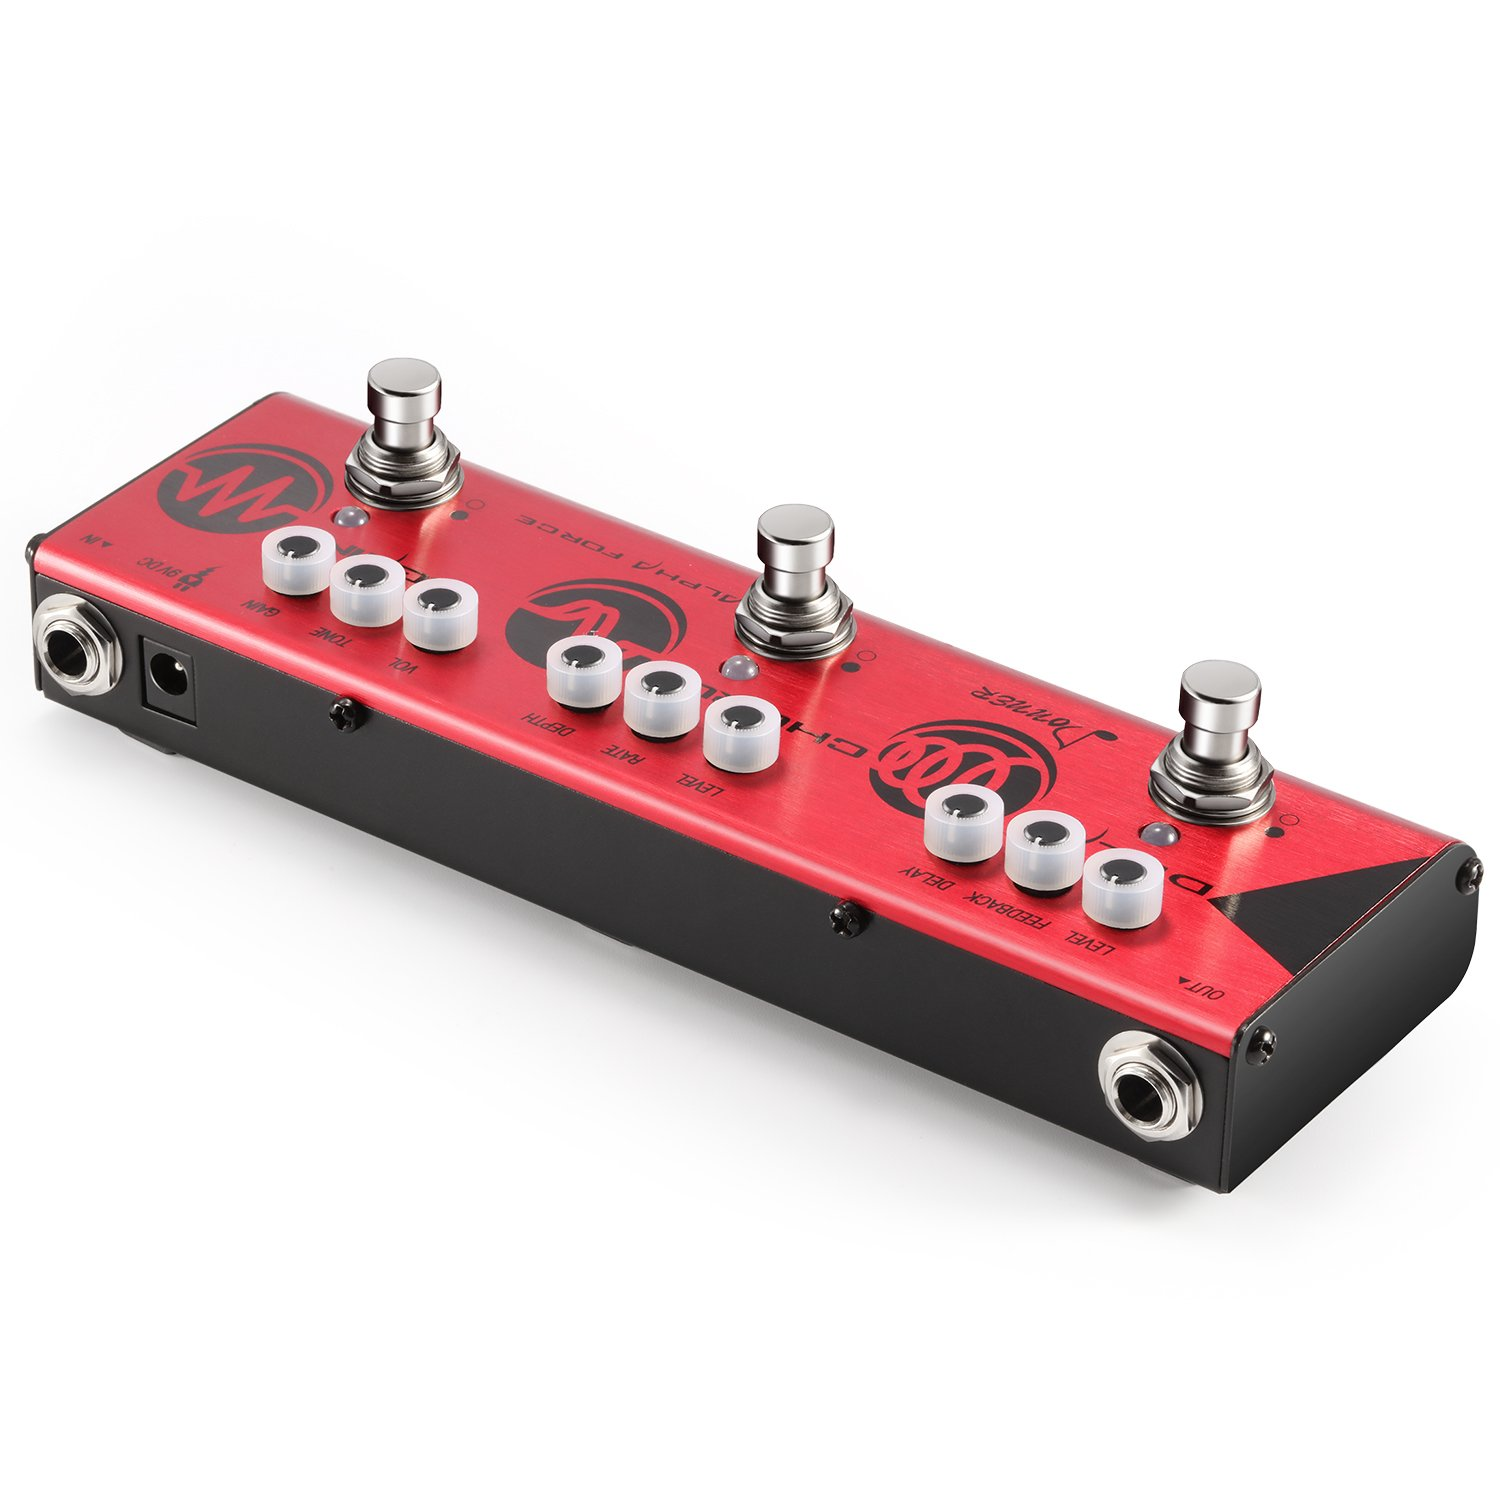 donner multi guitar effect pedal alpha force 3 in 1 effects delay chorus high gain distortion. Black Bedroom Furniture Sets. Home Design Ideas